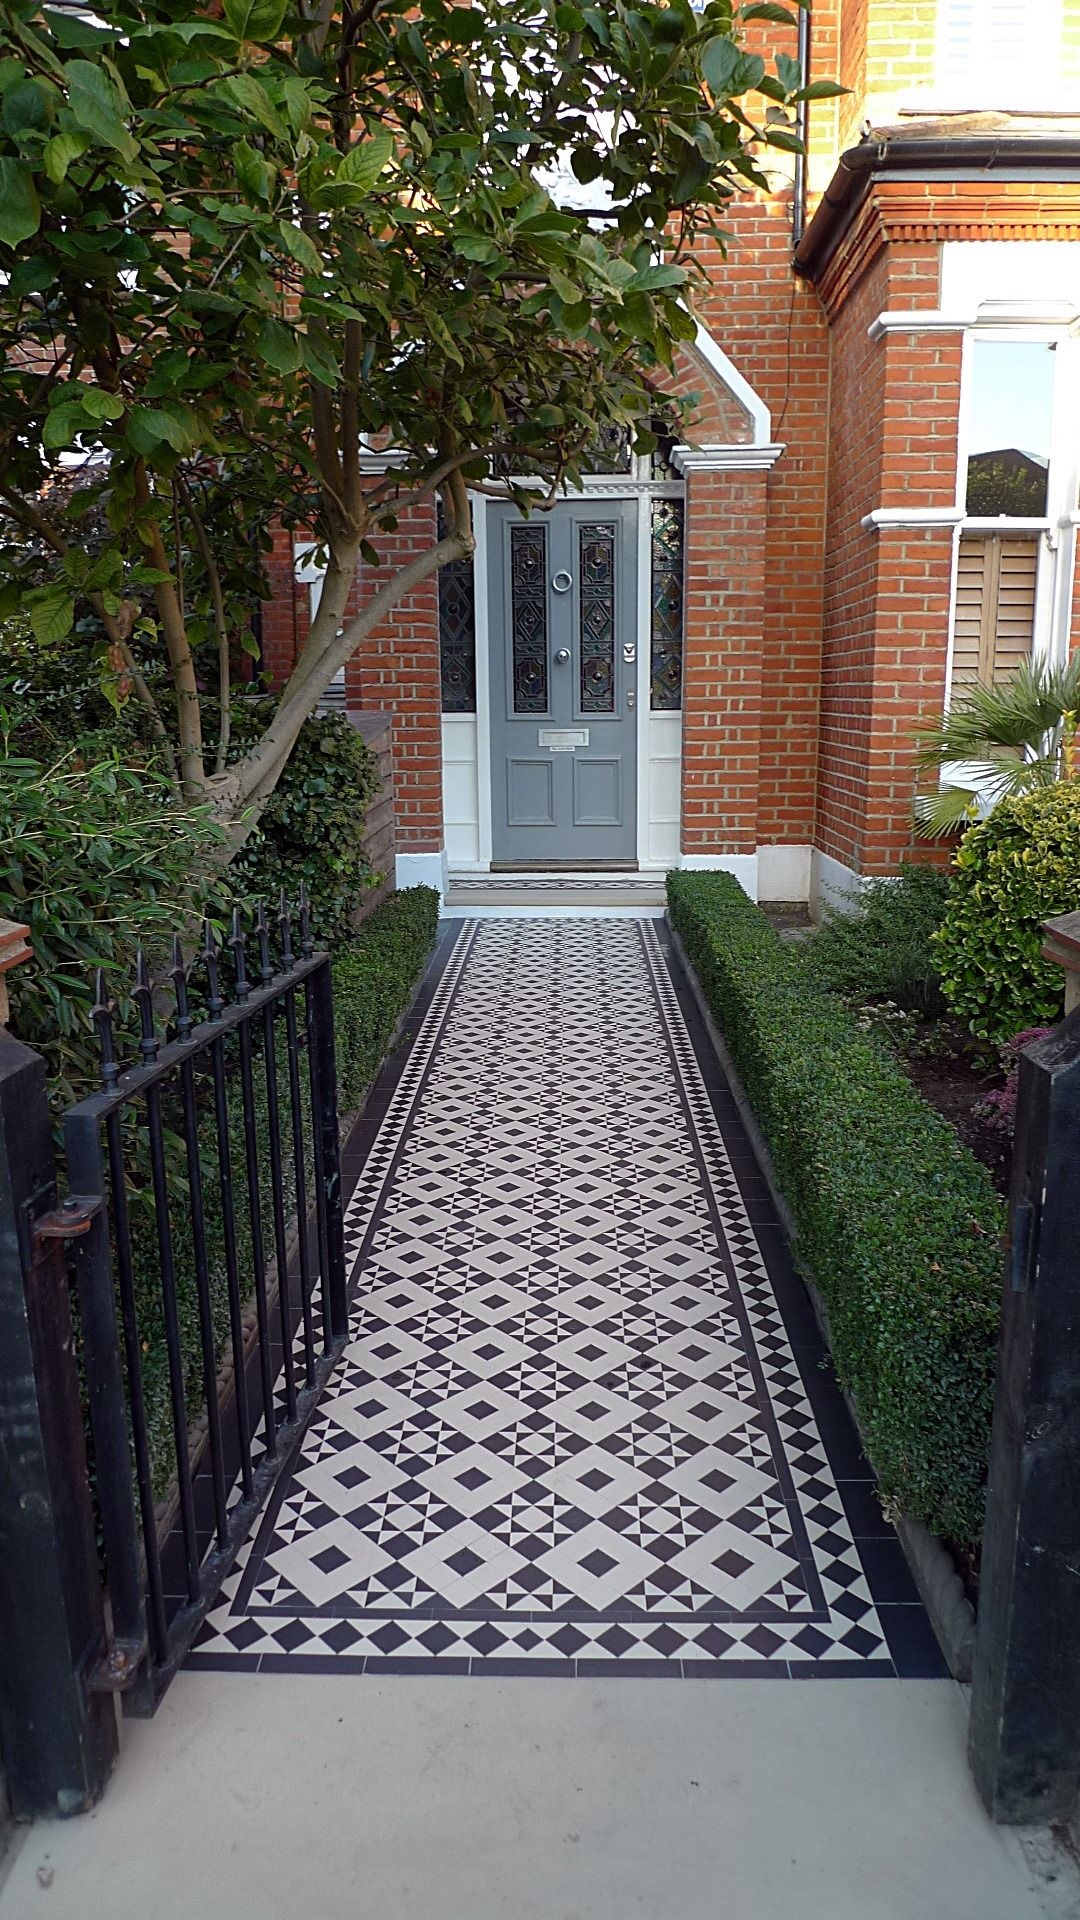 Badkamerverf Plafond Victorian Black And White Mosaic Tile Path Battersea York Stone